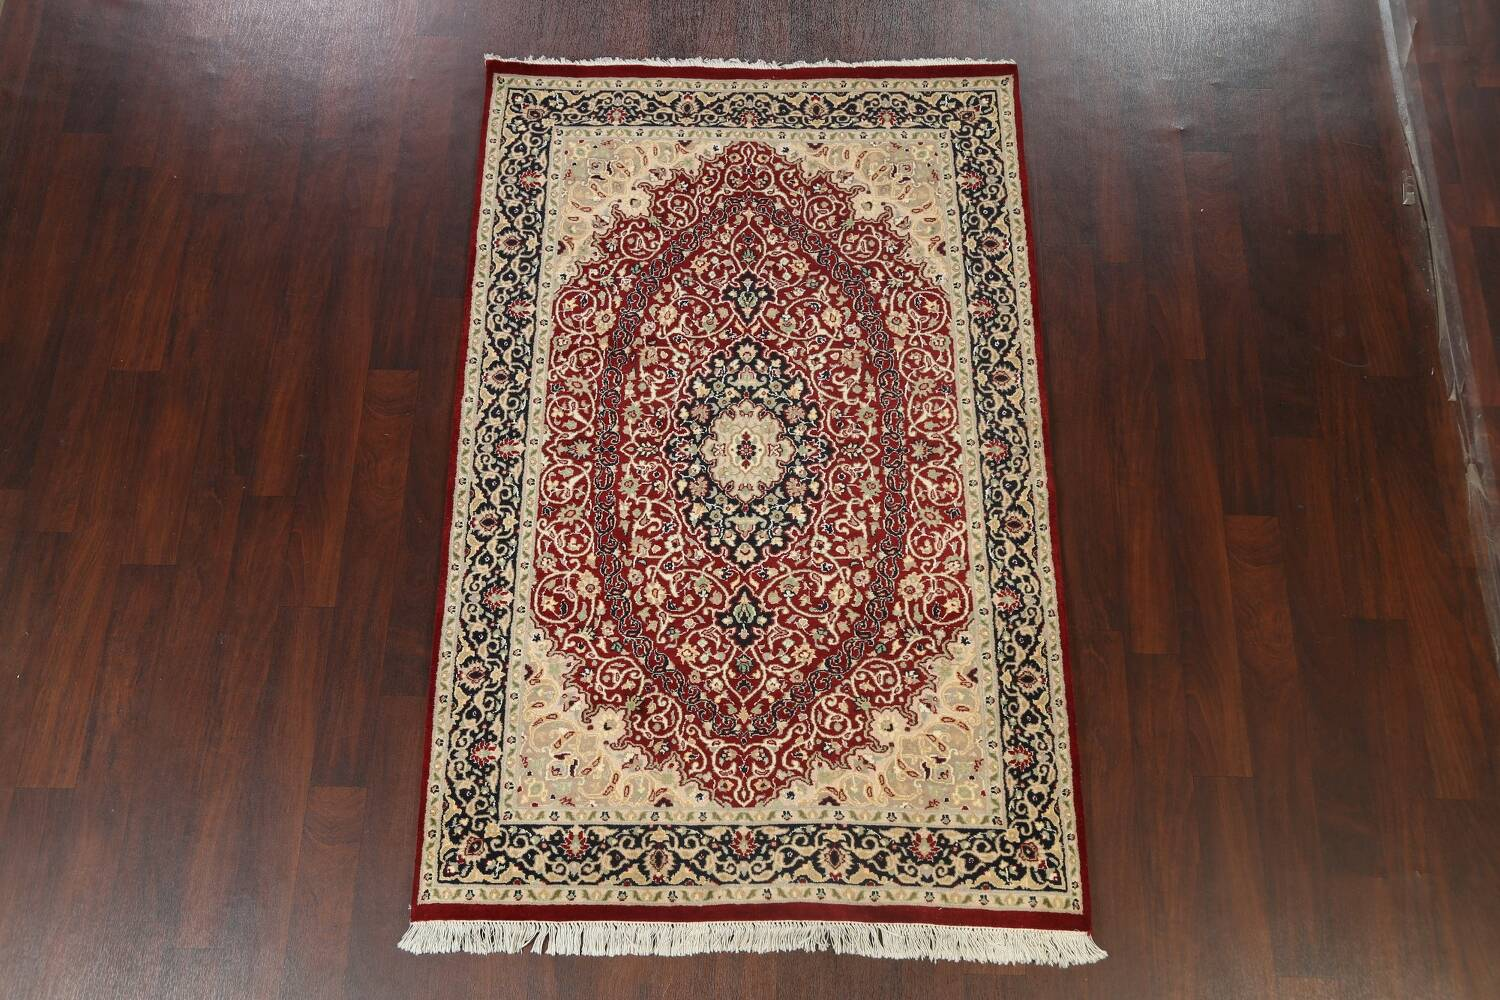 Vegetable Dye Floral Tabriz Oriental Area Rug 5x7 image 2